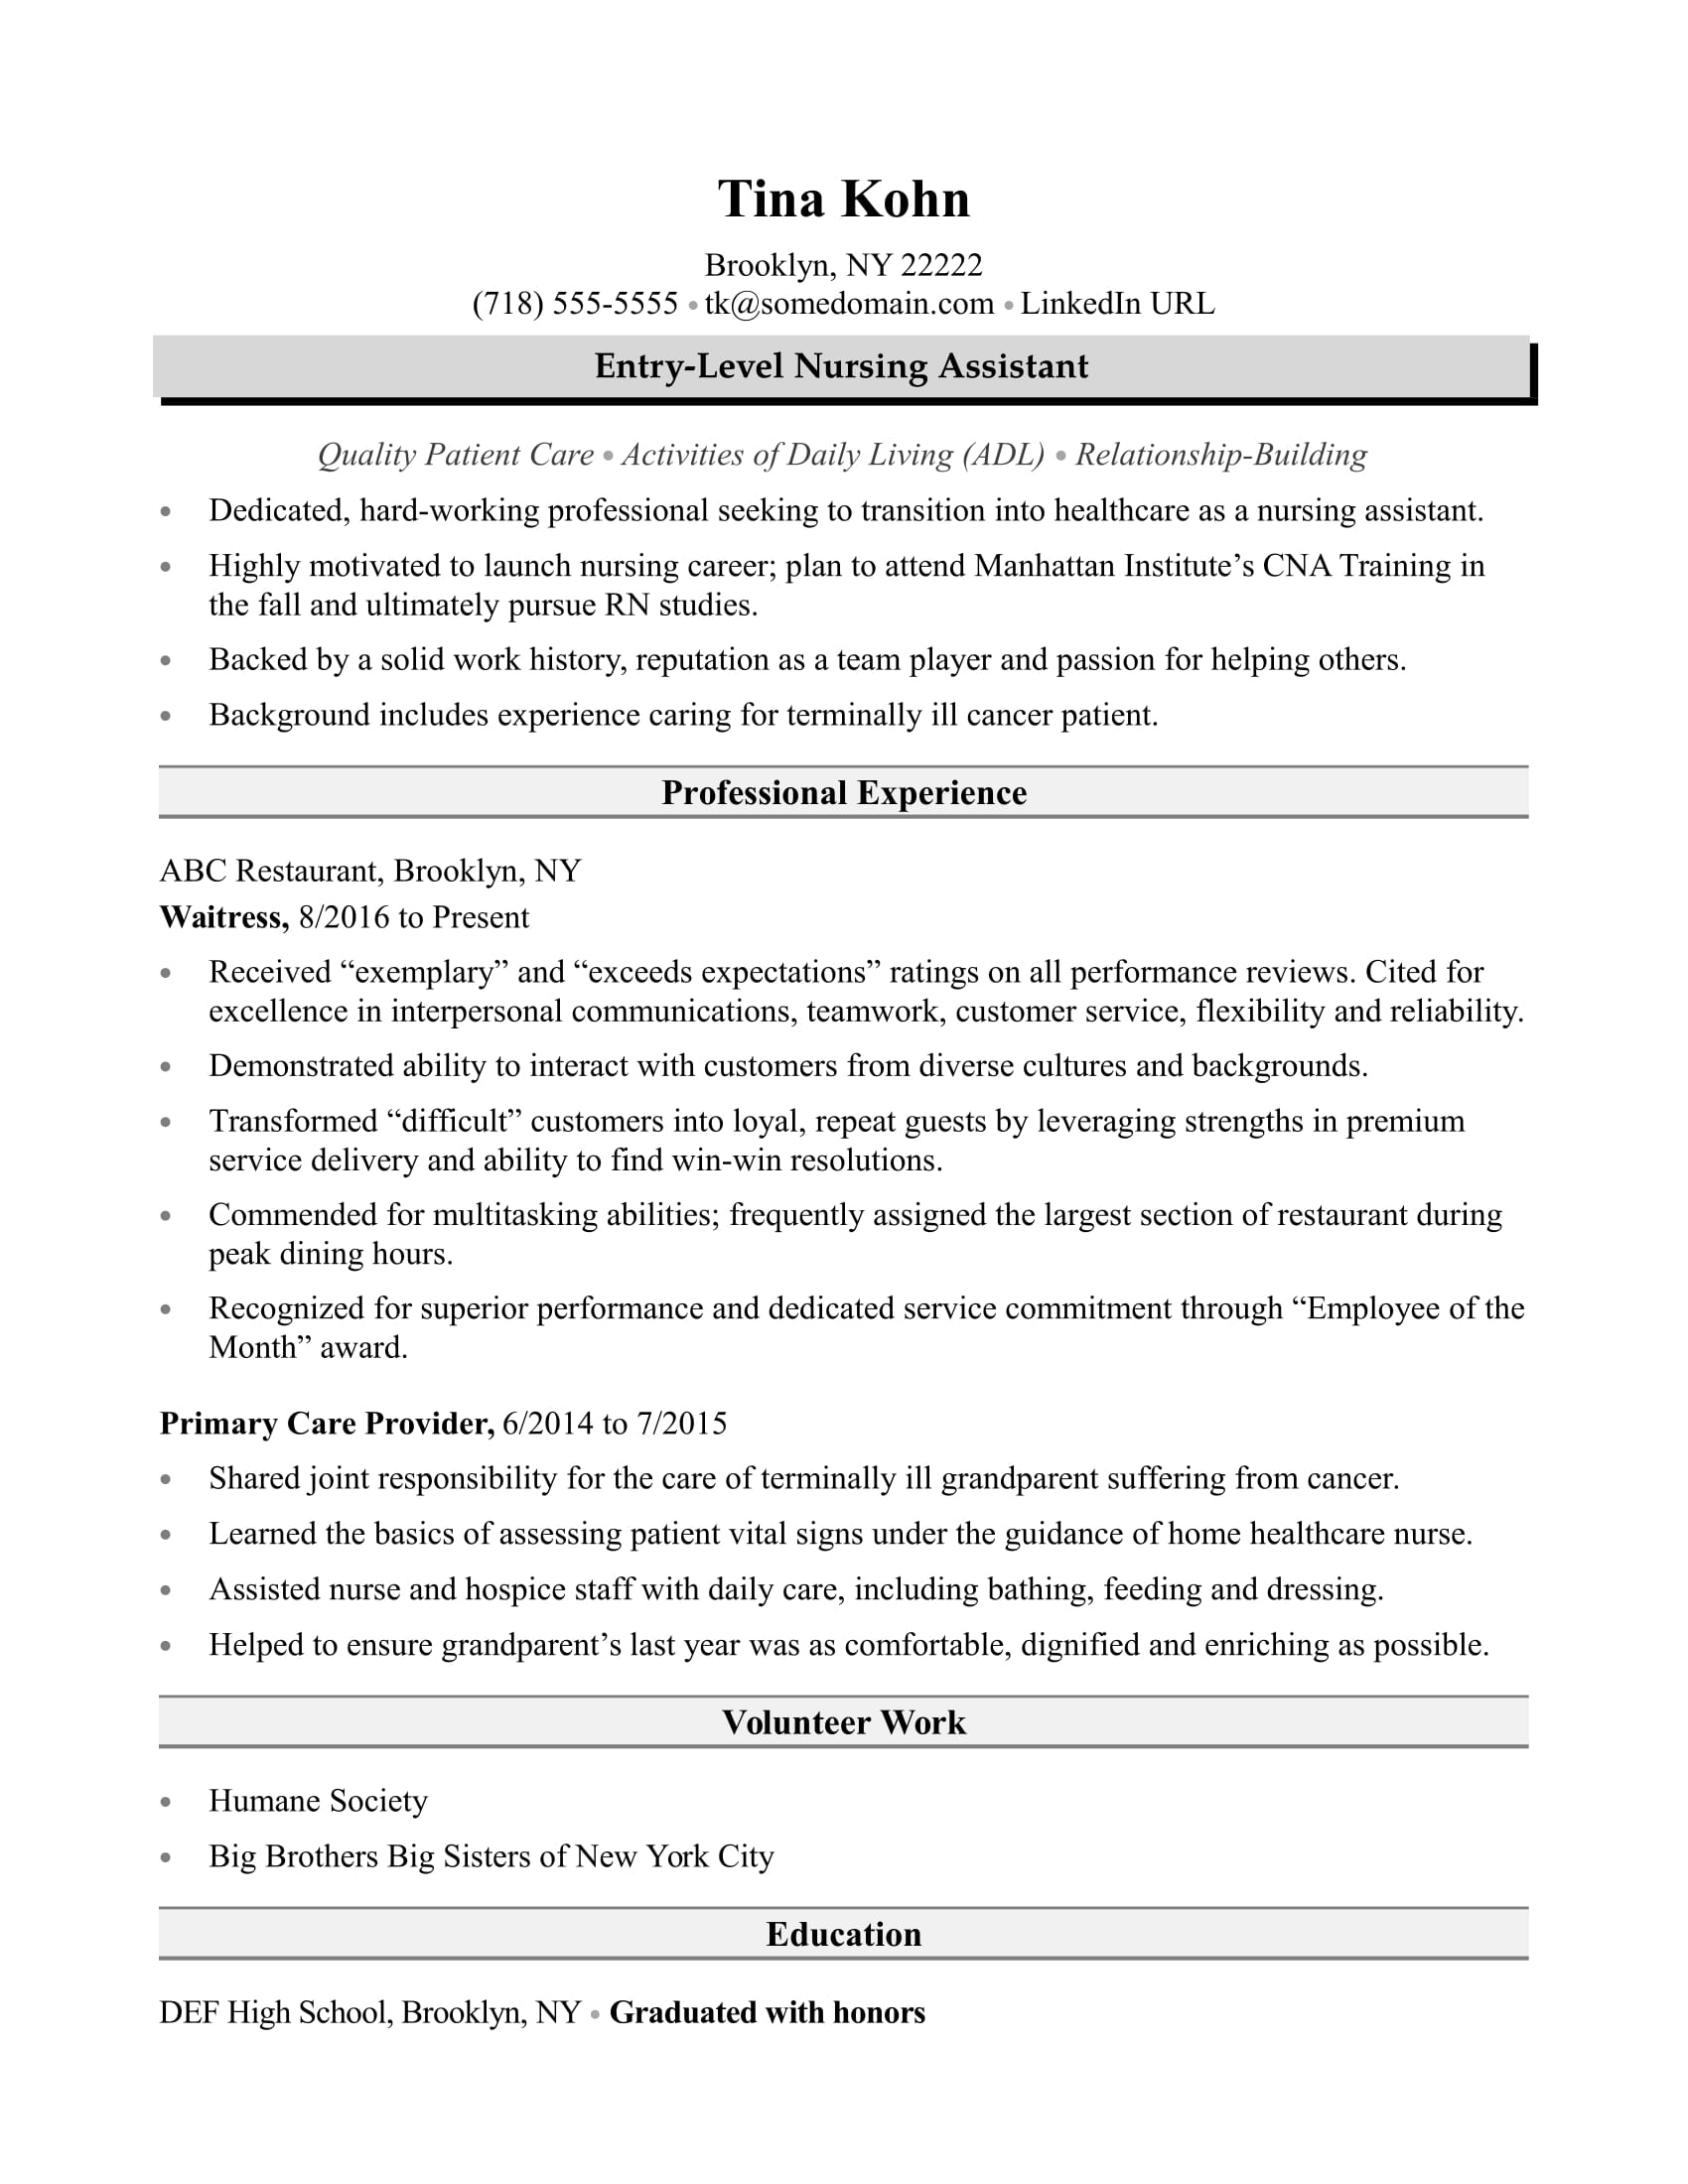 Nursing assistant resume sample for Cover letter for ain nursing